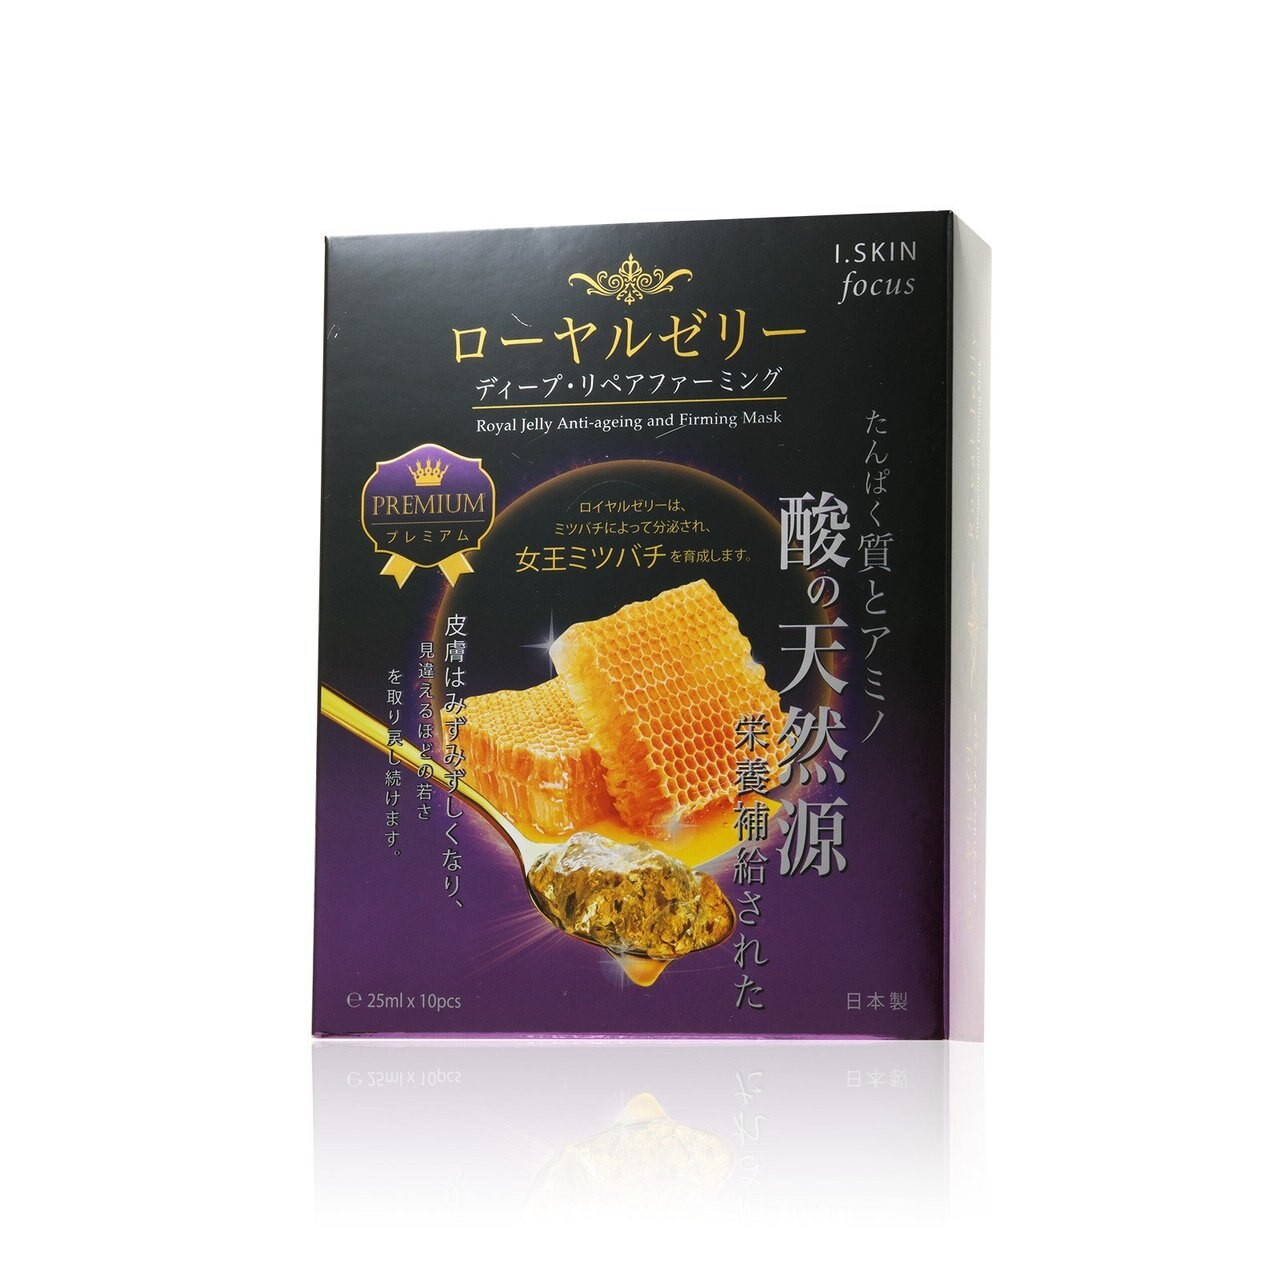 I. SKIN Focus Royal Jelly Anti-ageing and Firming Mask (10pcs)